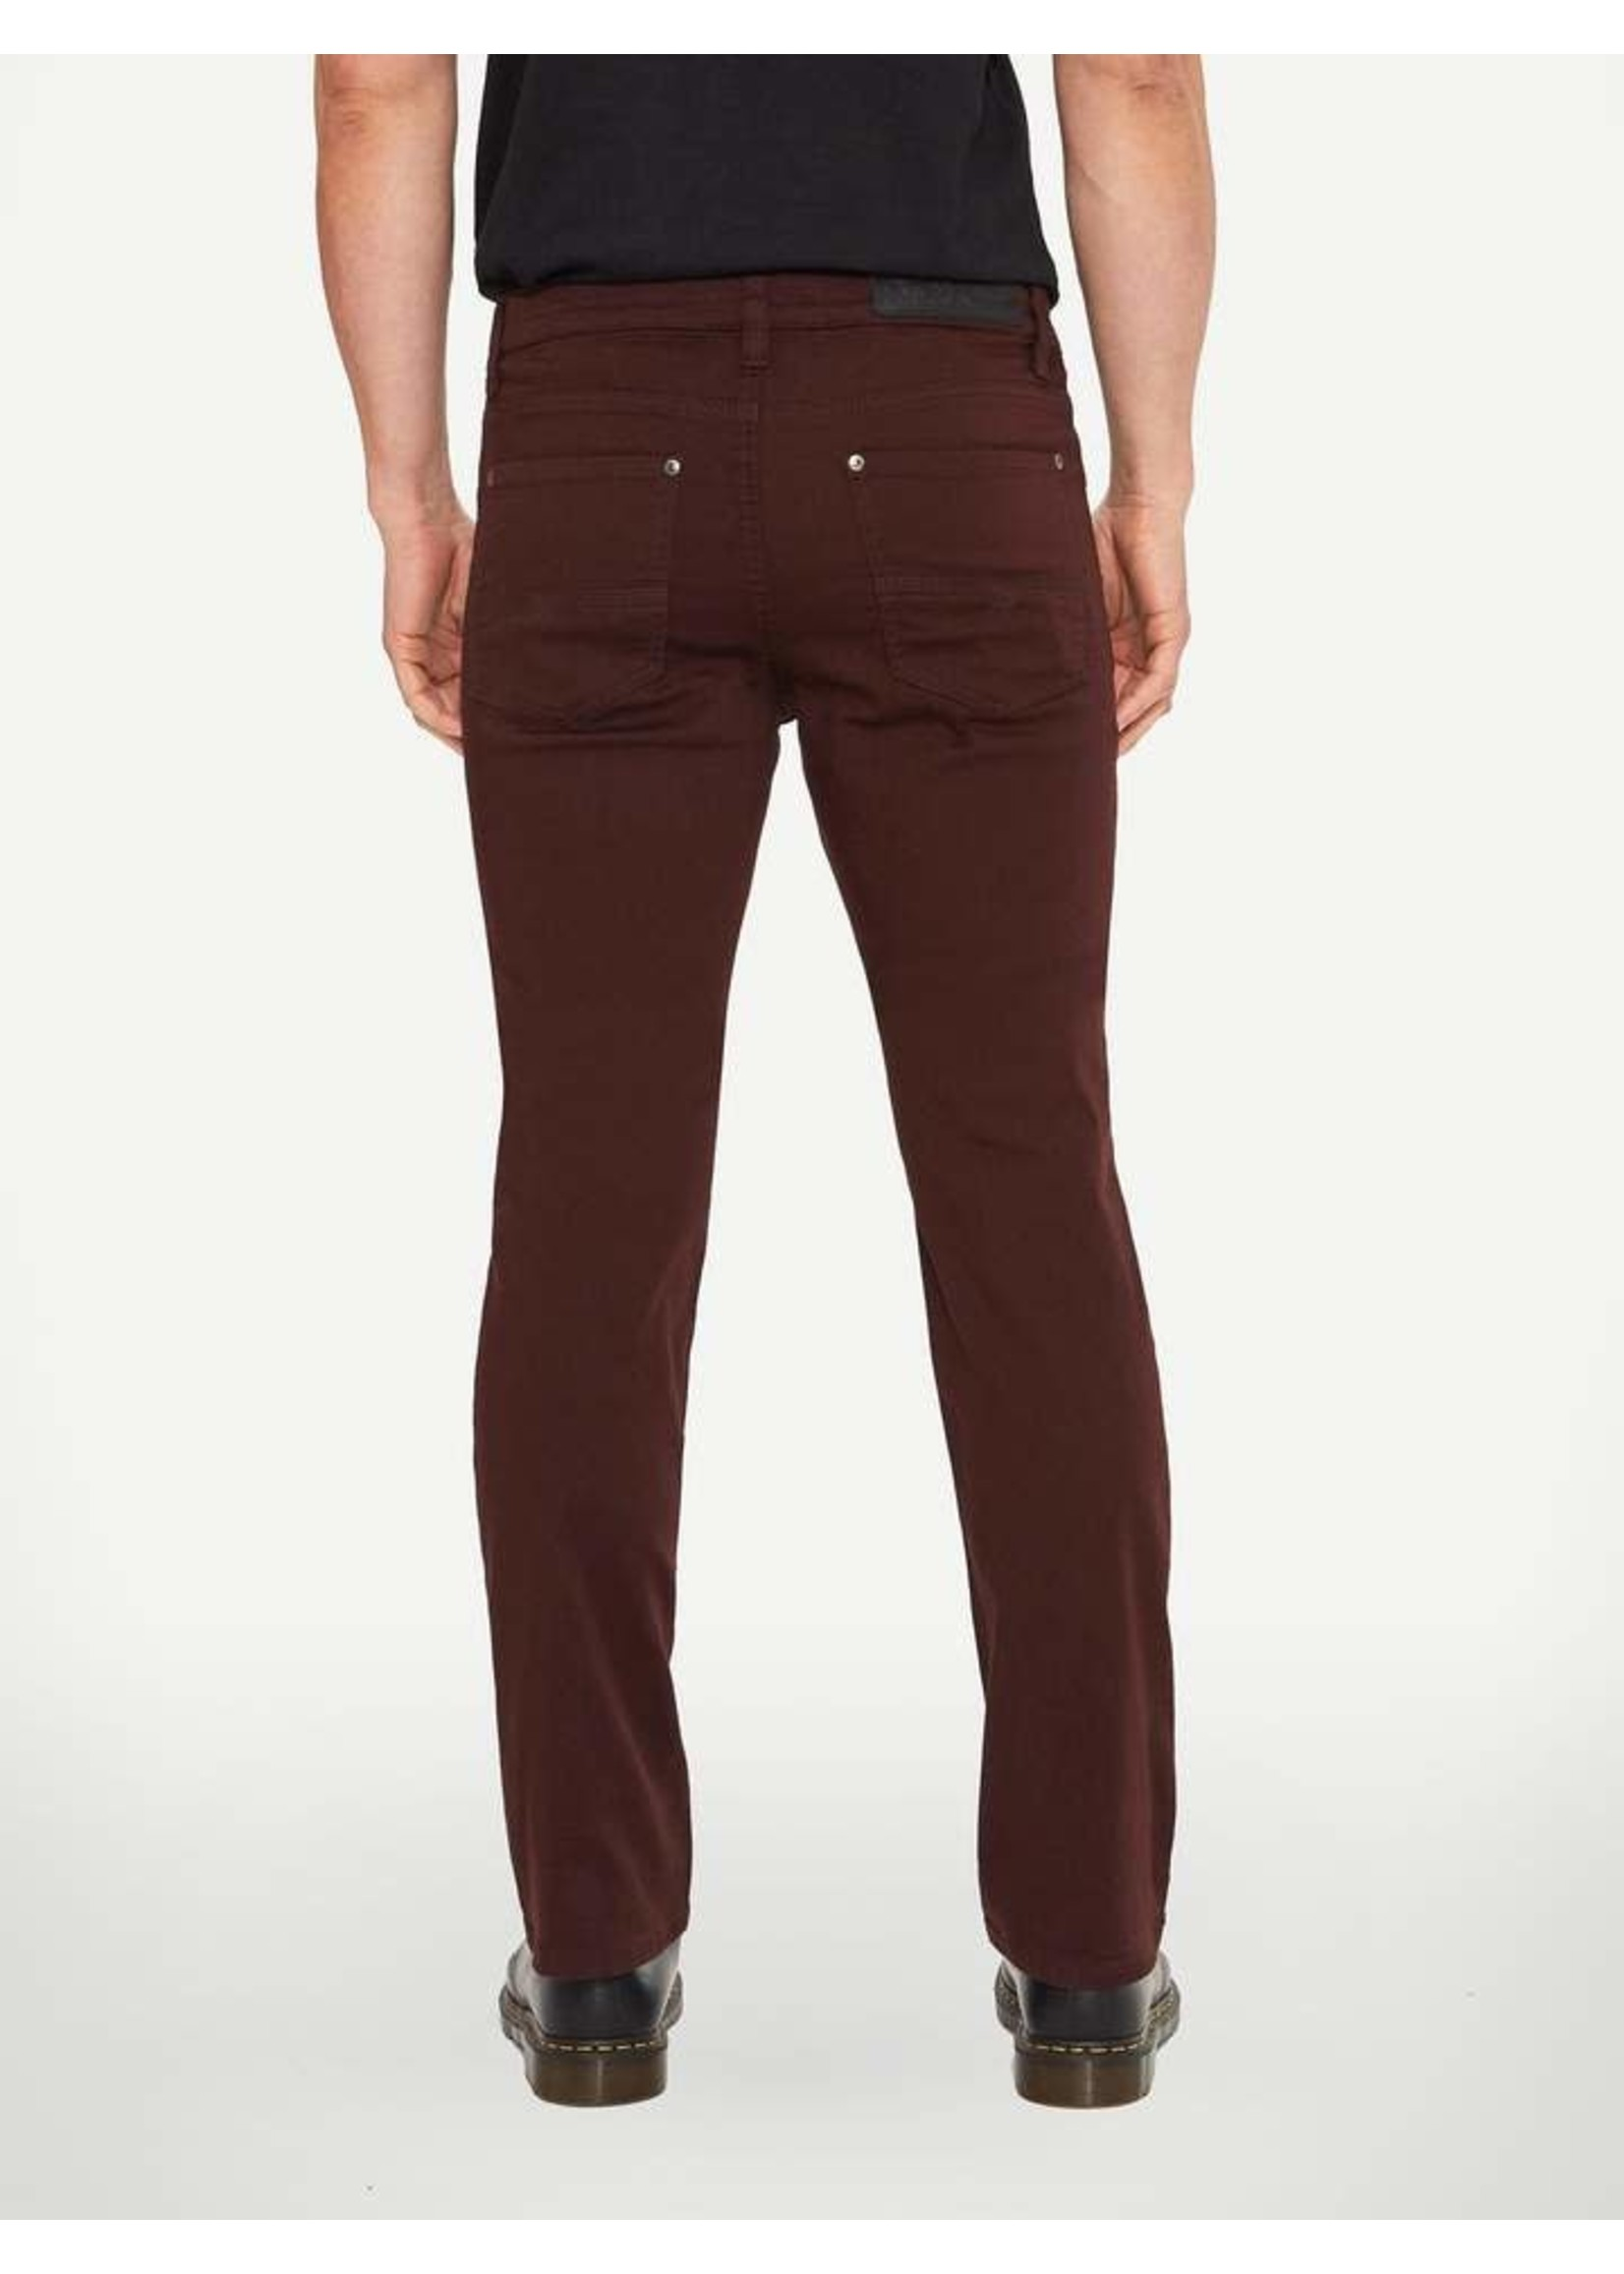 """Lois Jeans Canada The """"Brad Slim 6240-07"""" by Lois Jeans"""